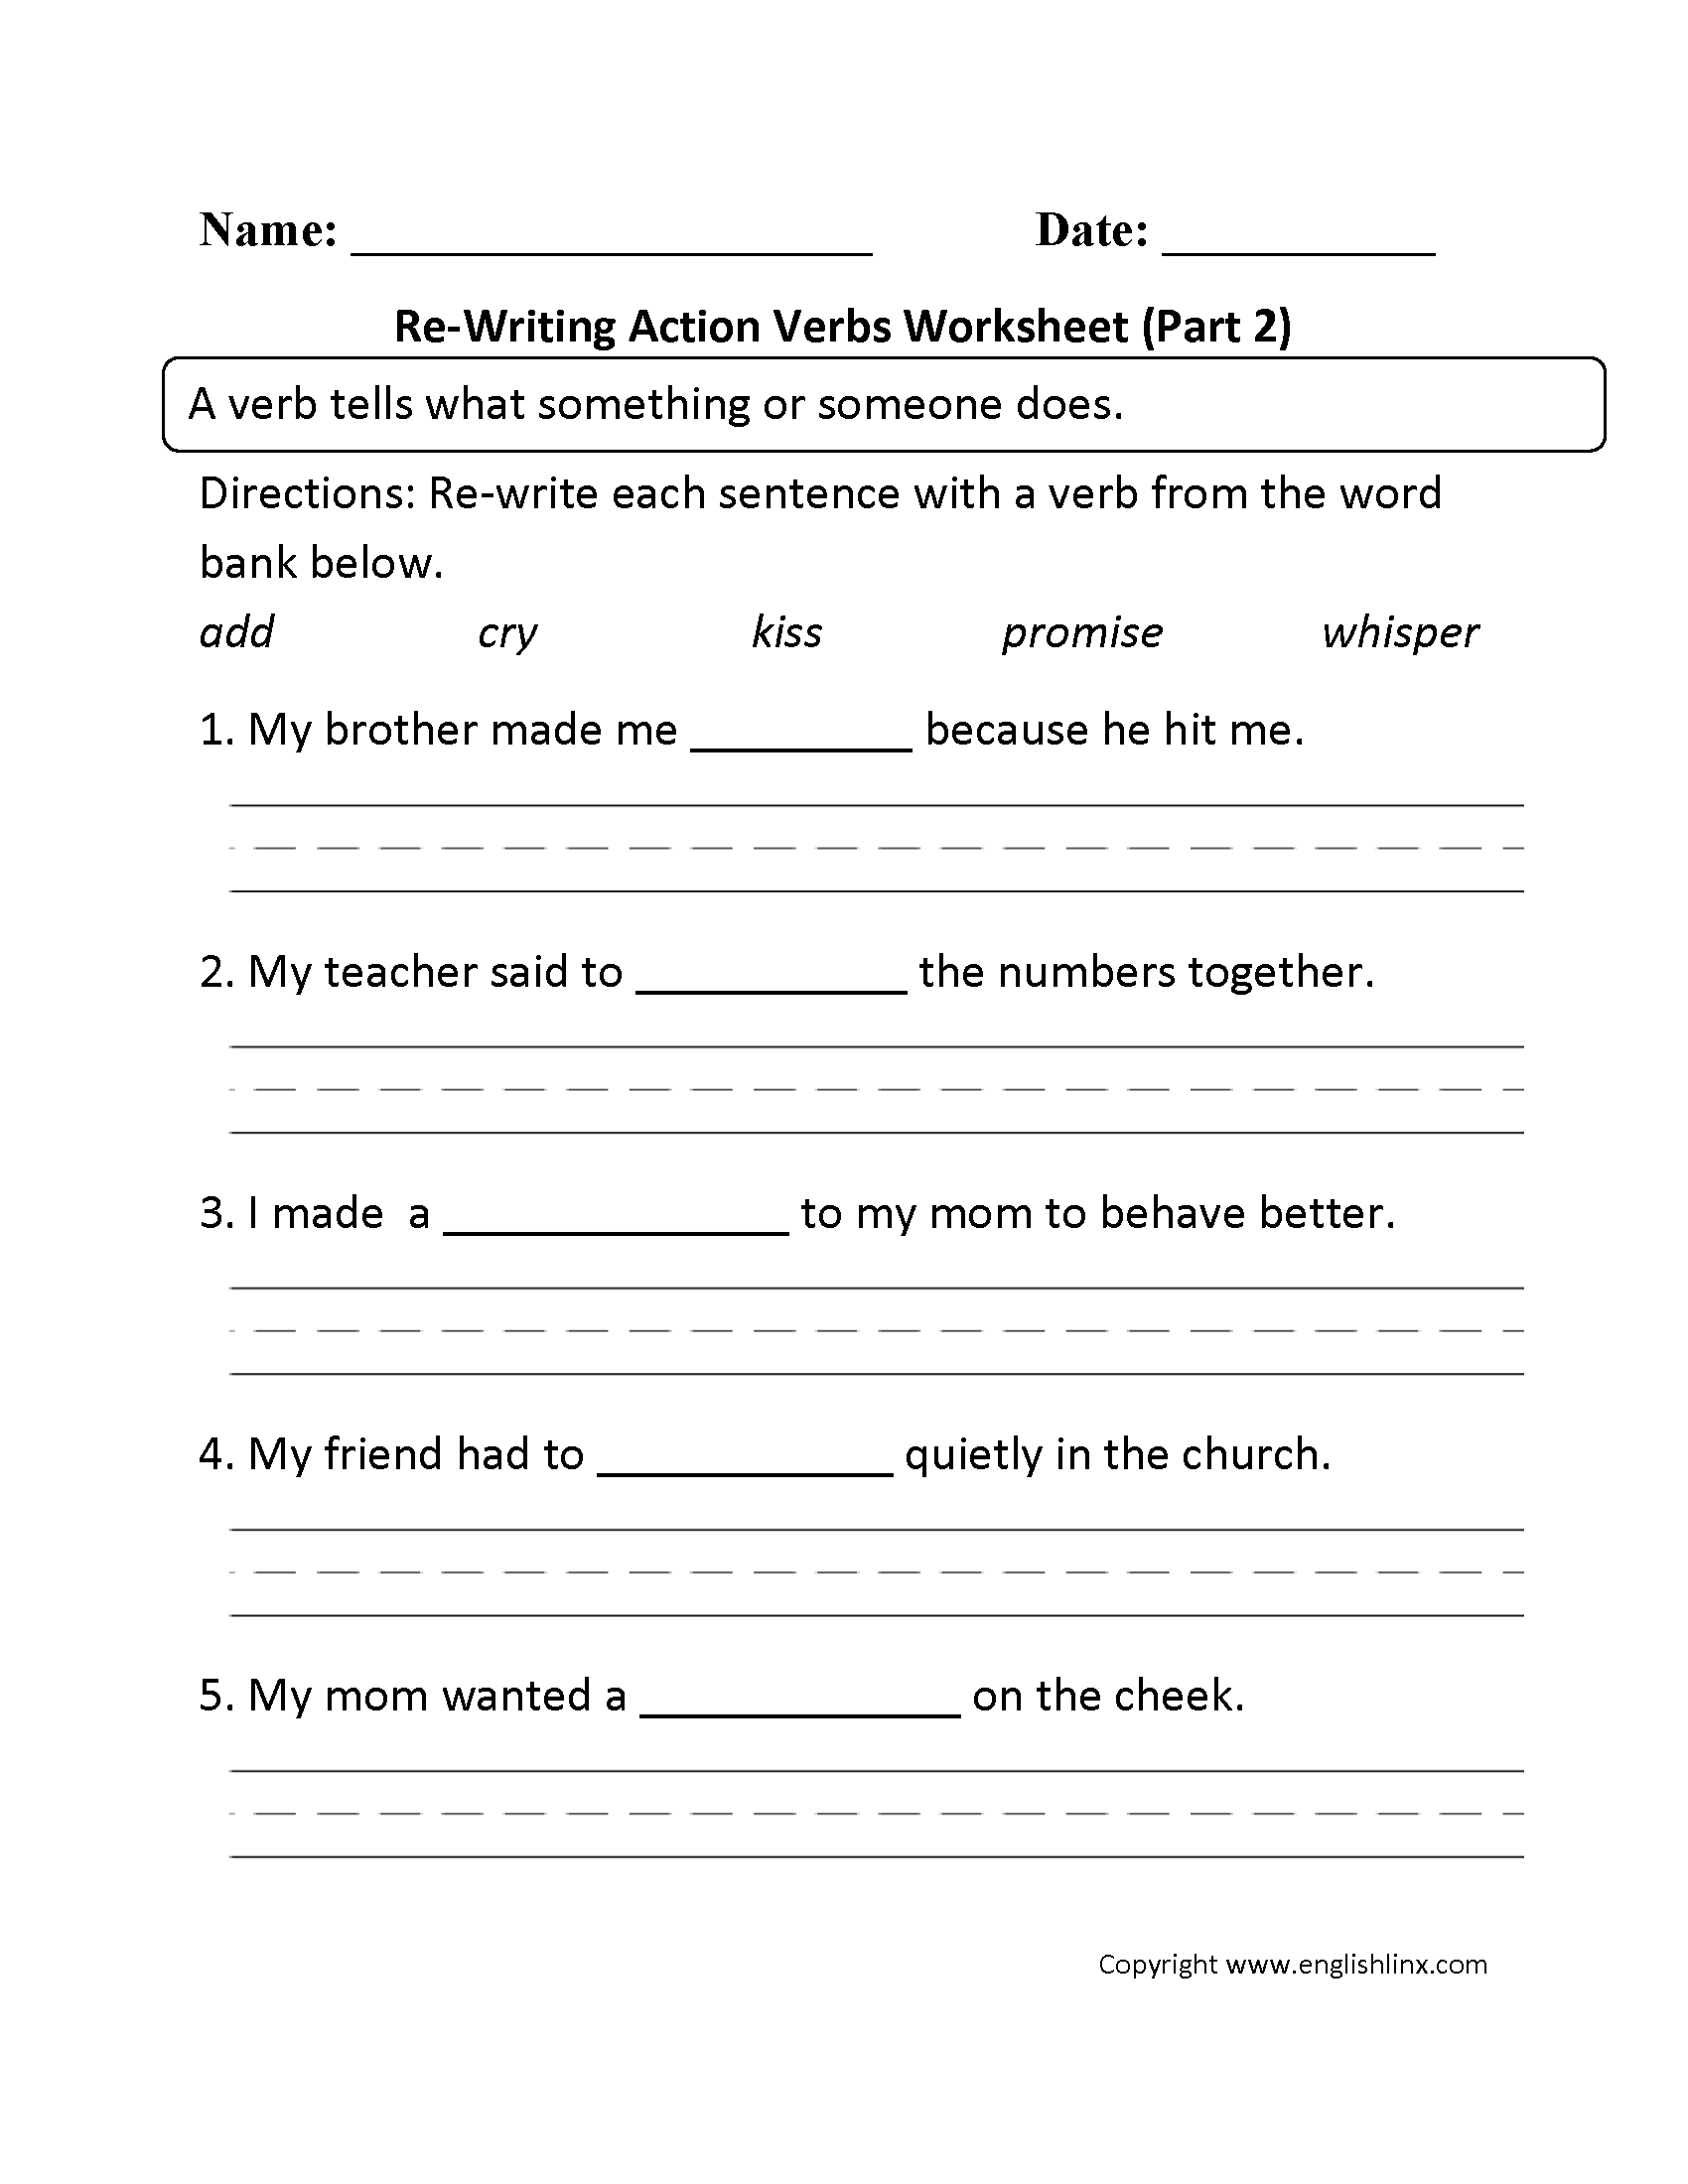 Worksheet Grade 2 Verbs verbs worksheets action worksheet part 2